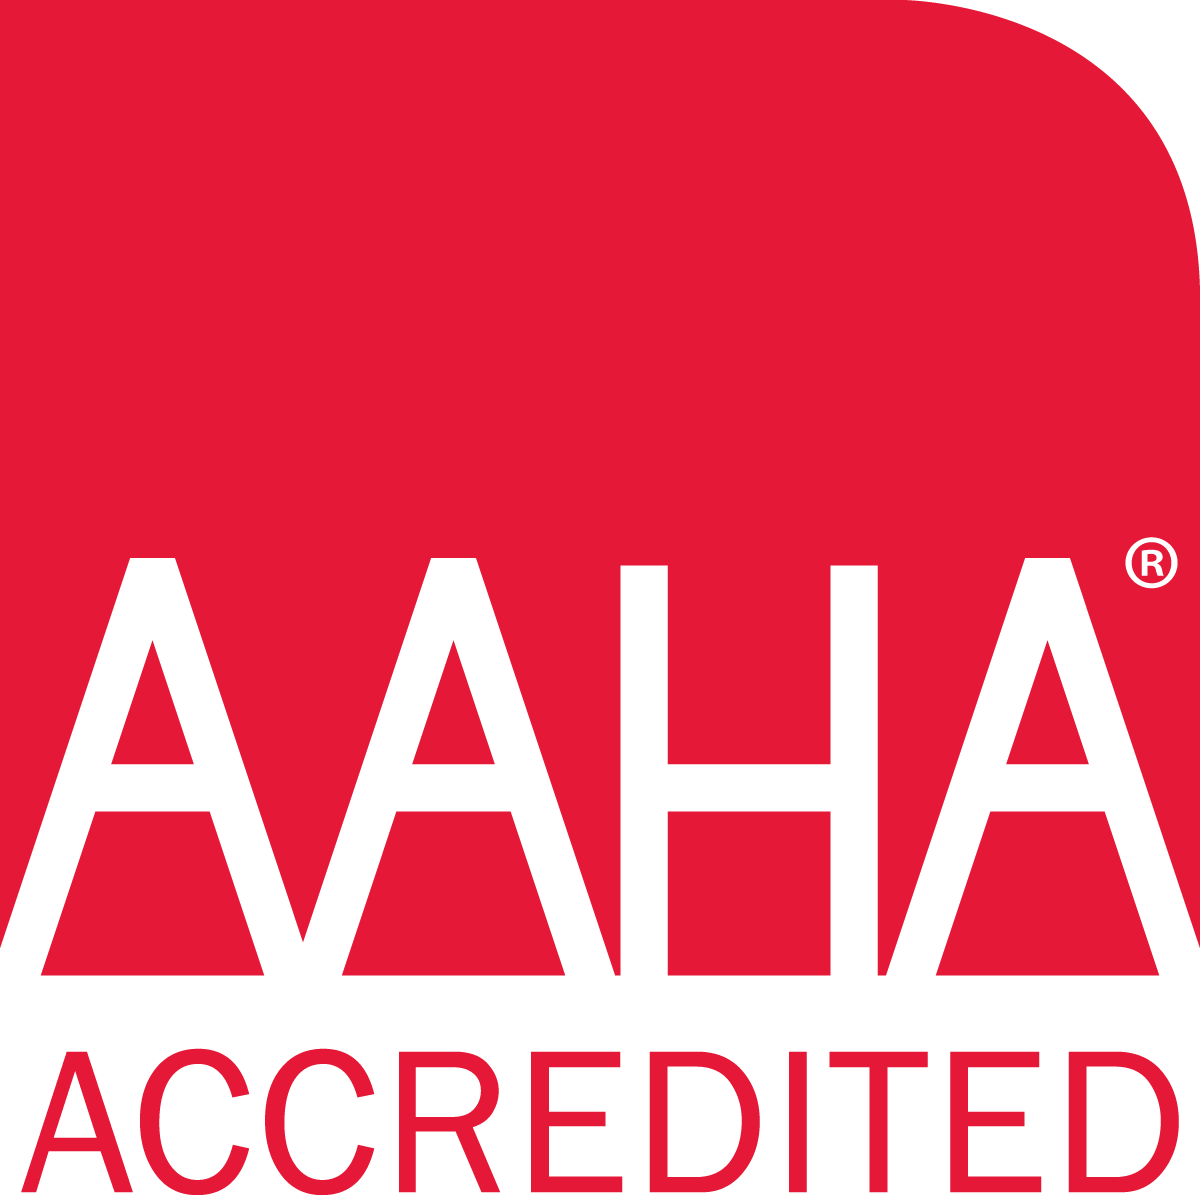 American Animal Hospital Association Accreditation